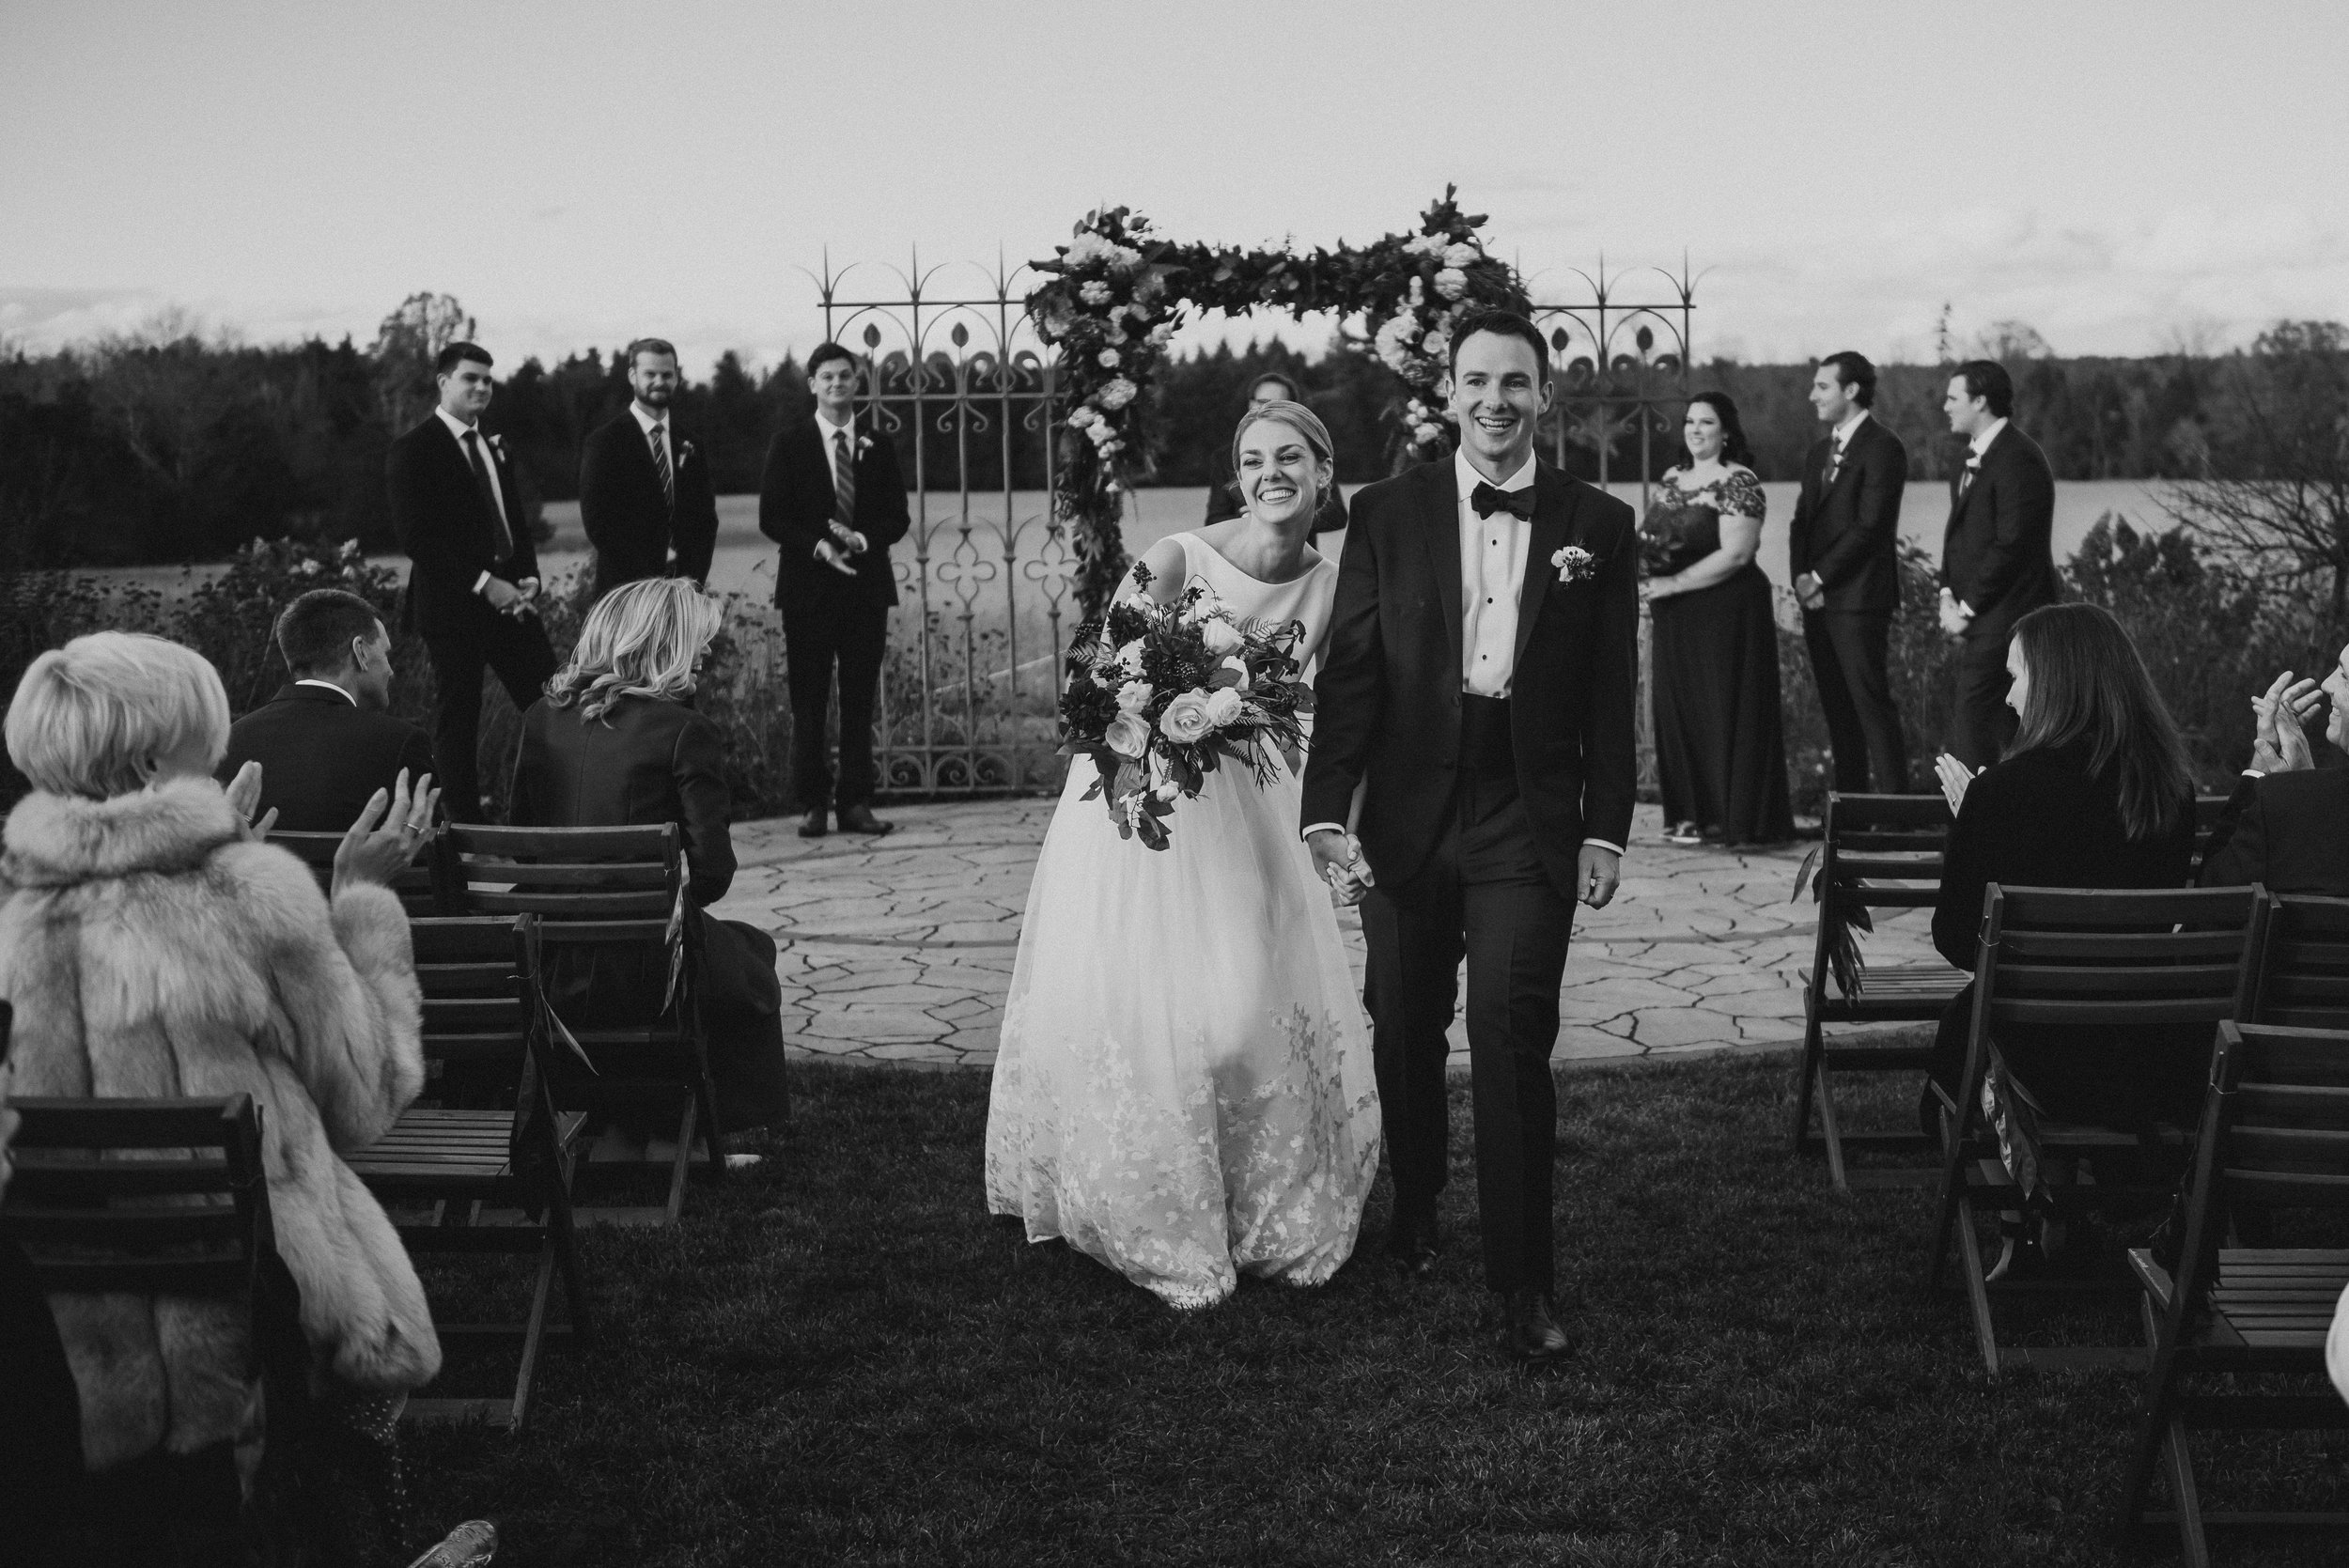 Bride and groom walking down the isle at their evermore wedding